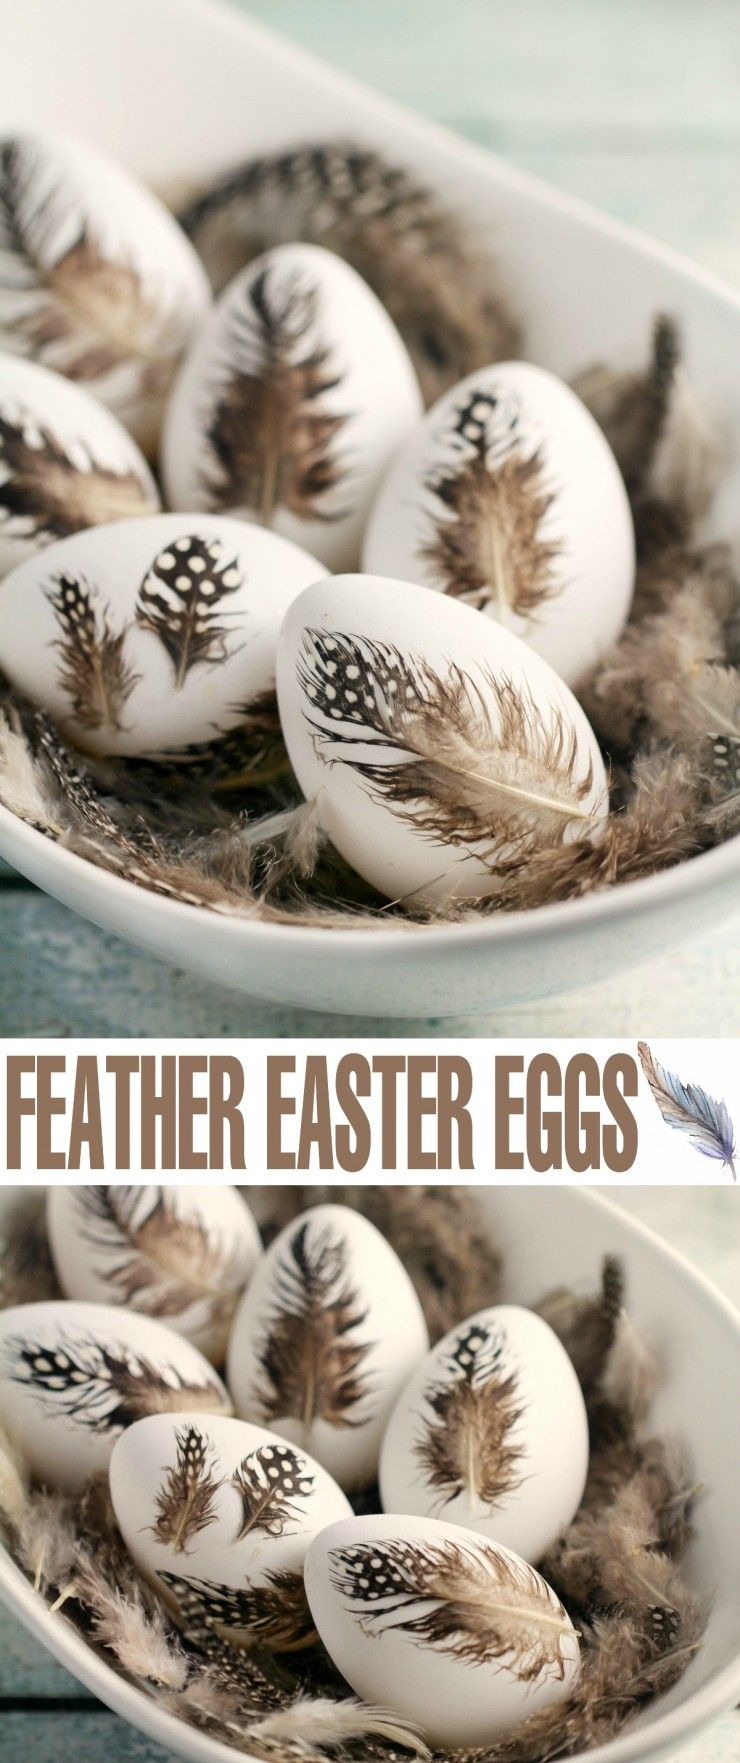 Feather Easter Eggs - Frugal Mom Eh!